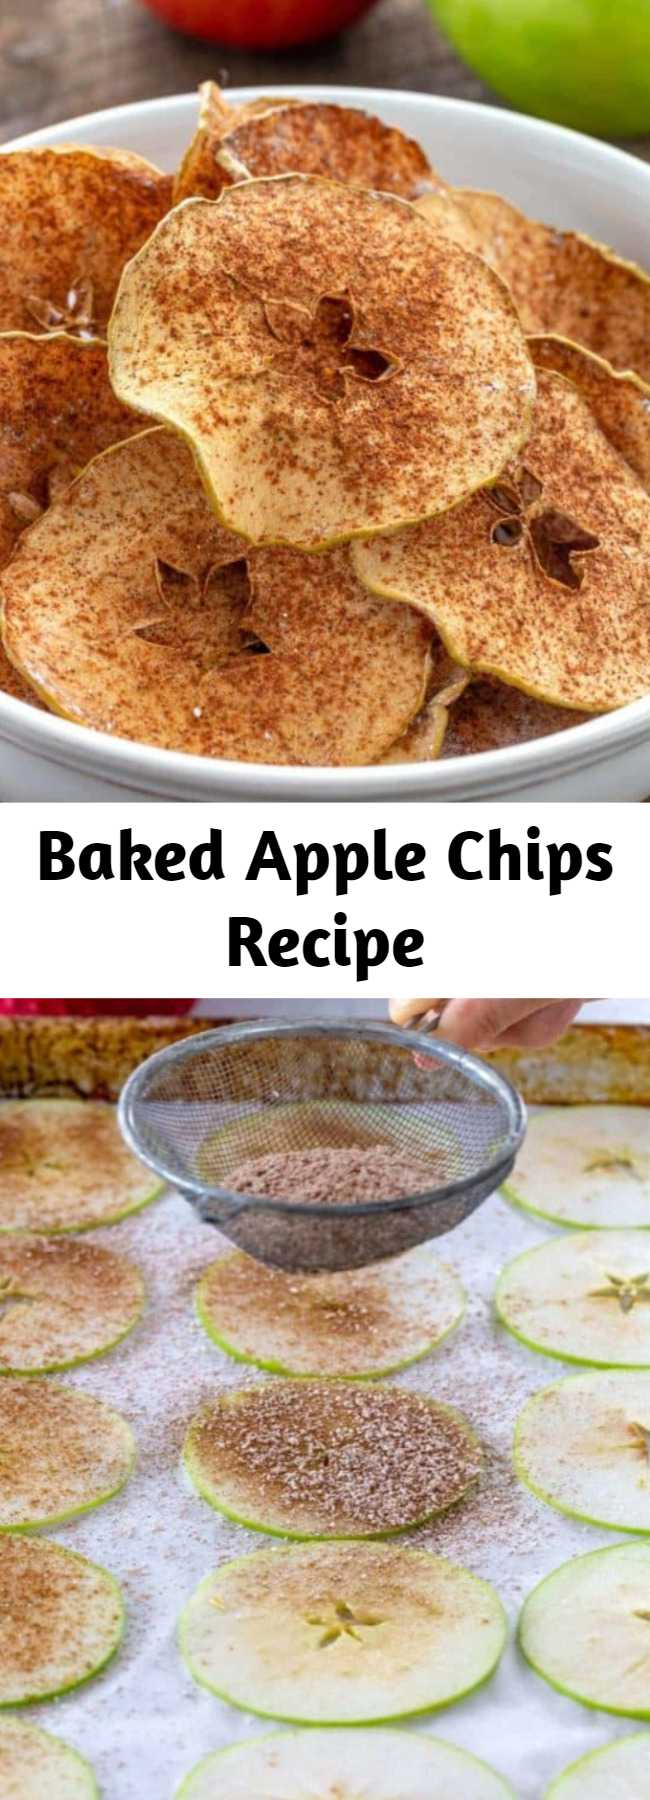 Baked Apple Chips Recipe - Chose your favorite apple variety to make these simple and healthy baked cinnamon apple chips! Cinnamon enhances the flavor while cutting the apples into thin slices, and baking at a low oven temperature for a few hours ensures super crispy chips. These crisp apple chips are delicious and addicting, without the guilt!